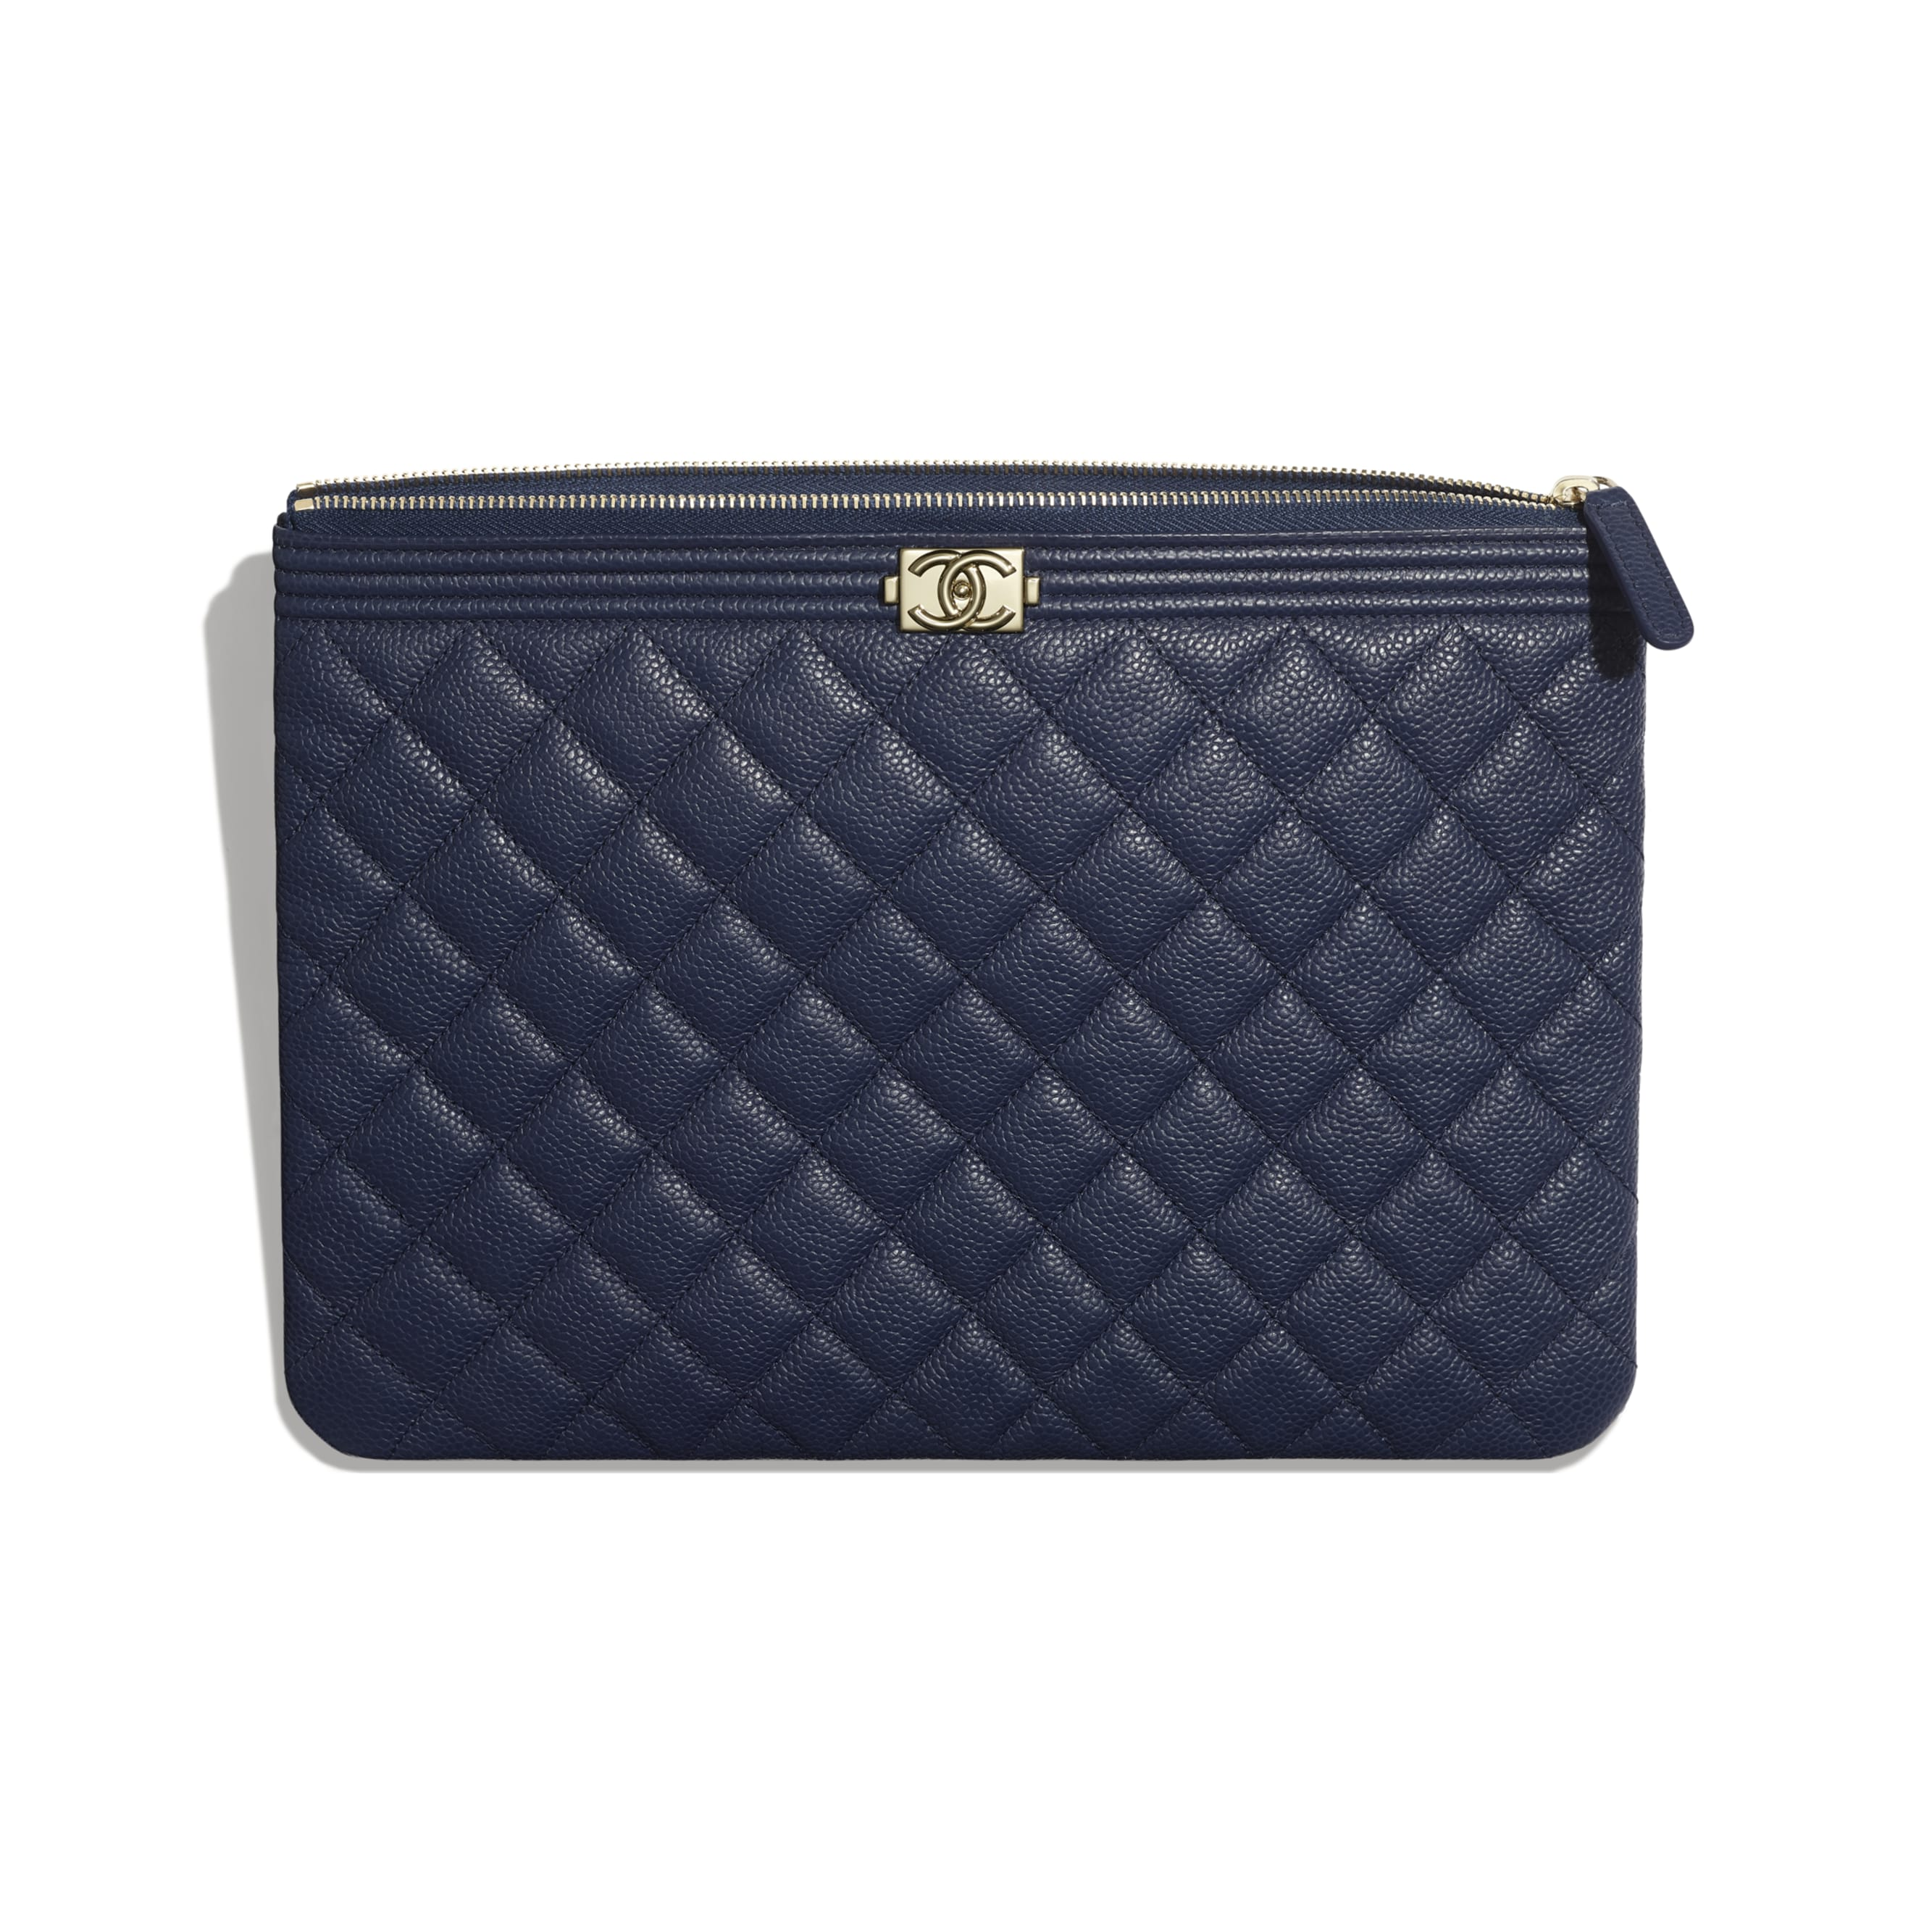 BOY CHANEL Pouch - Navy Blue - Grained Calfskin & Gold-Tone Metal - Other view - see standard sized version